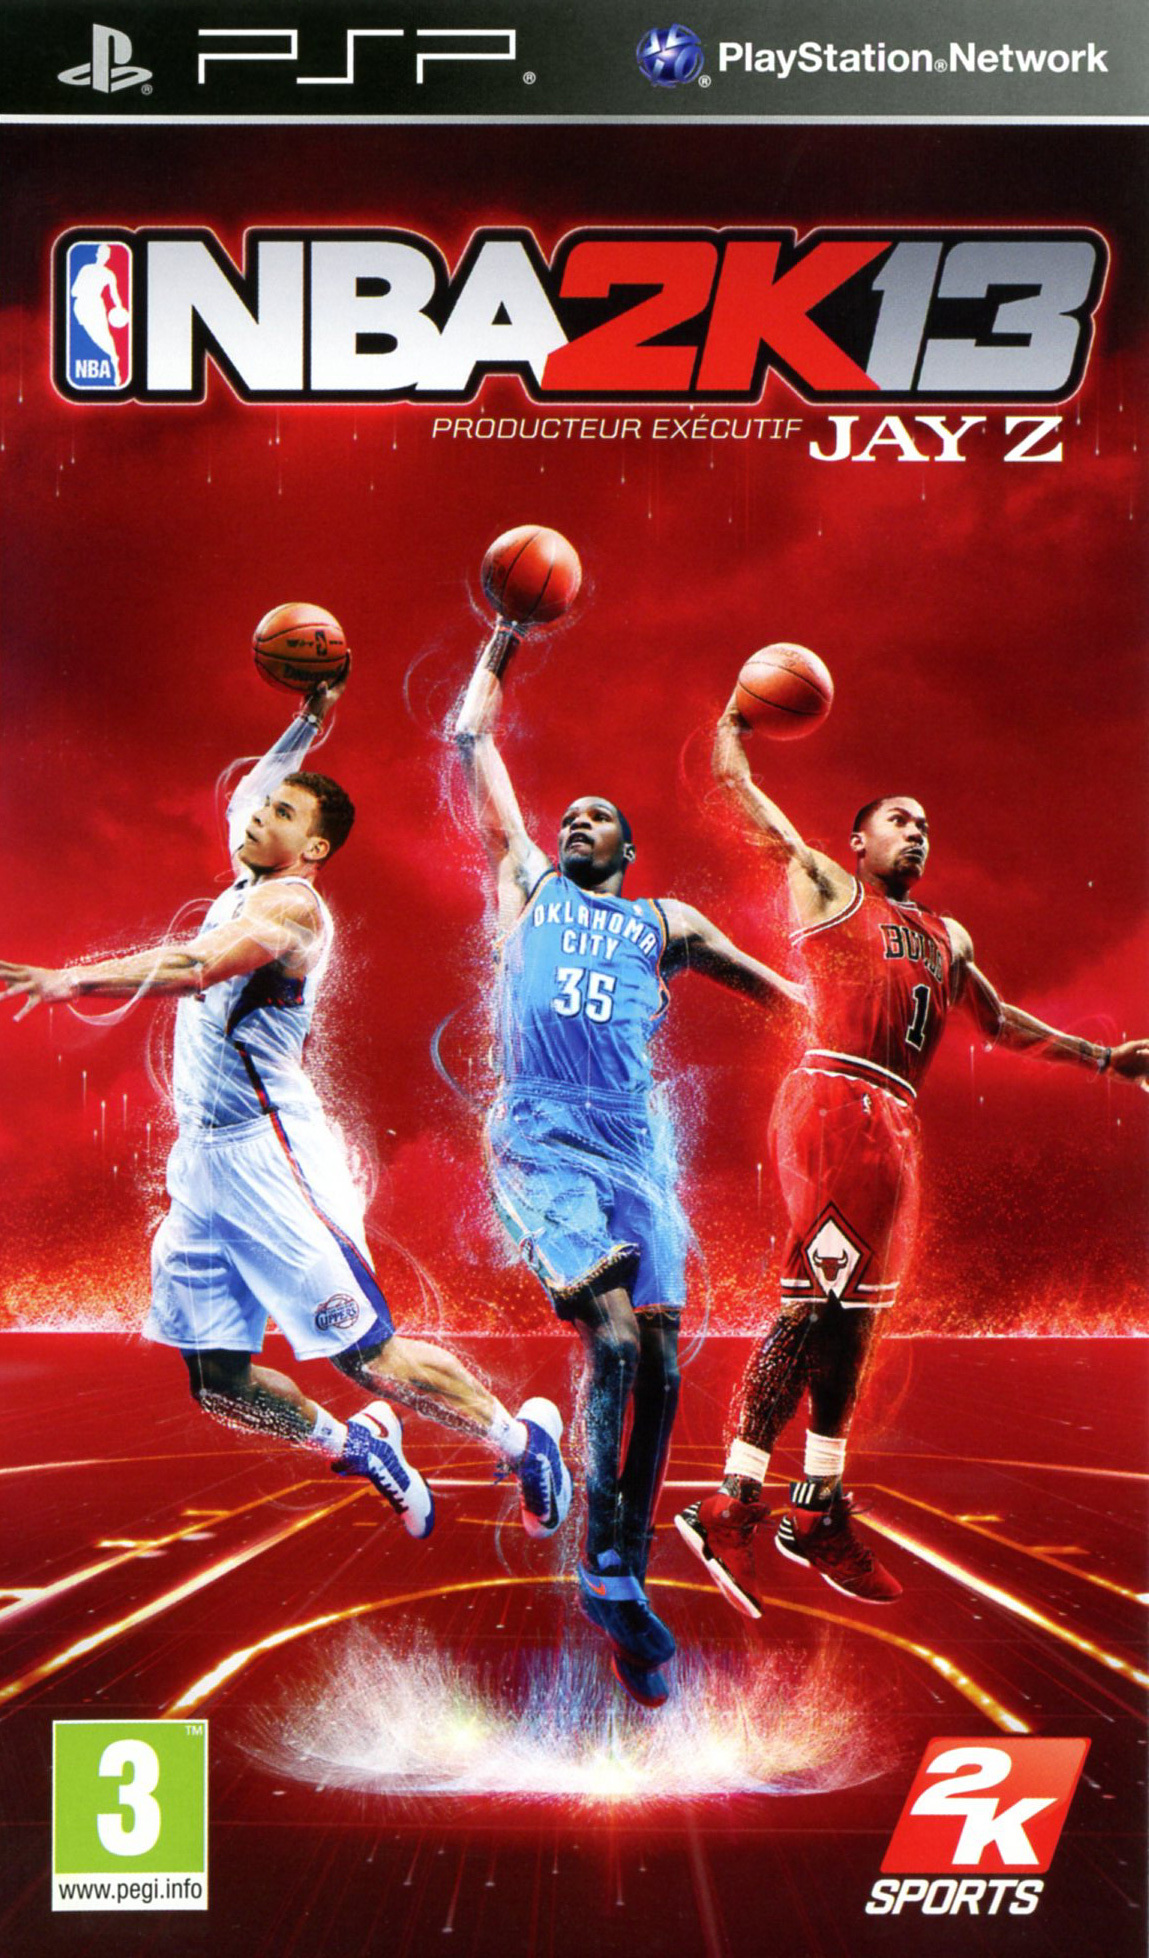 [MULTI] nba 2k13 [PLAYSTATION-PORTABLE]